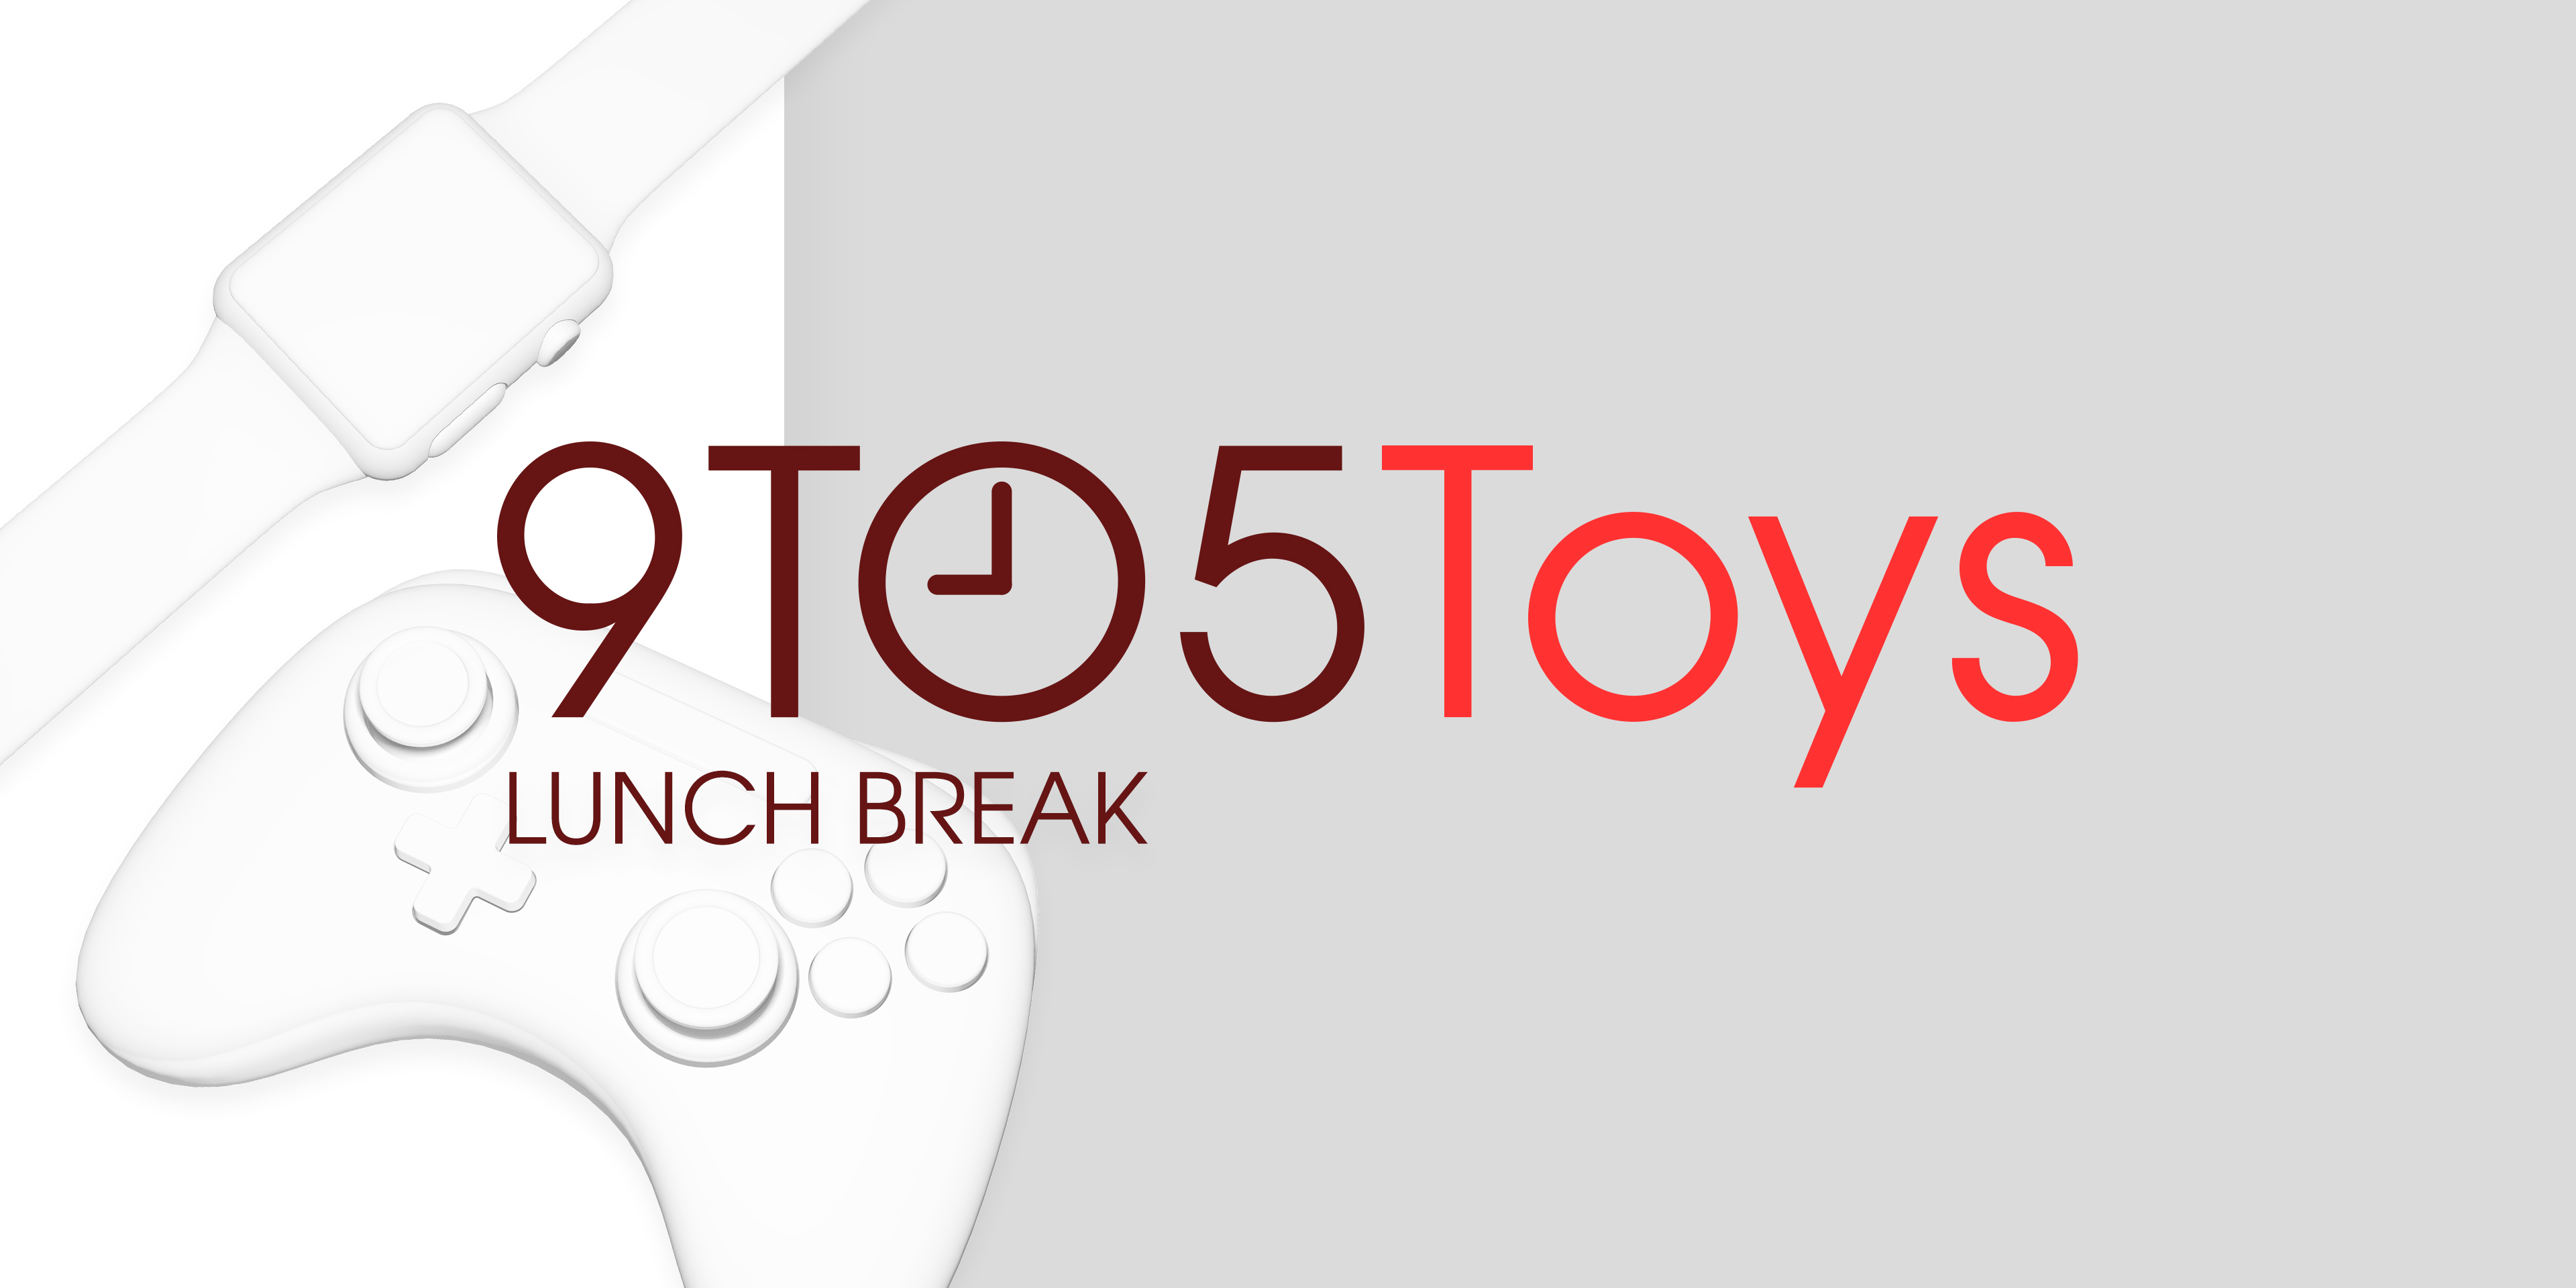 9to5toys lunch break homepod 305 iphone xs otterbox case 22 elevation lab iphone corddock 28 more